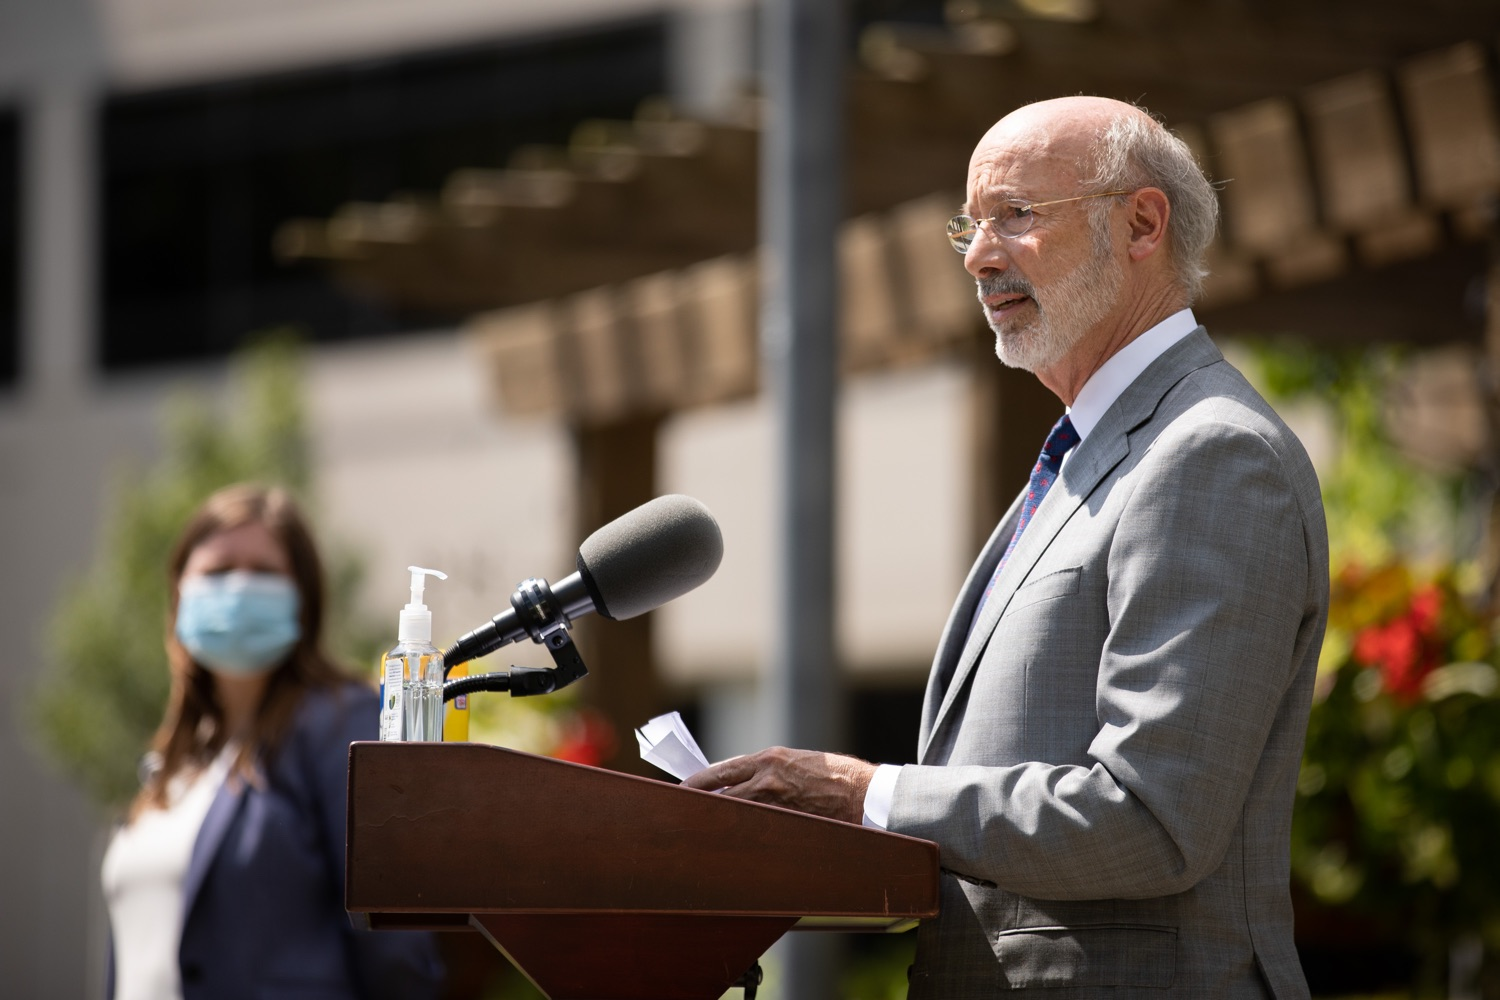 "<a href=""https://filesource.wostreaming.net/commonwealthofpa/photo/18093_gov-healthcare_workers_dz_16.jpg"" target=""_blank"">⇣ Download Photo<br></a>Pennsylvania Governor Tom Wolf speaking during his visit to Milton S. Hershey Medical Center. As the commonwealth continues its measured, phased reopening and COVID-19 case counts continue to decline, Governor Tom Wolf visited Penn State Milton S. Hershey Medical Center today to thank staff and learn more about how the facility is handling the pandemic and preparing for a possible resurgence in the fall.  Harrisburg, PA  June 24, 2020"